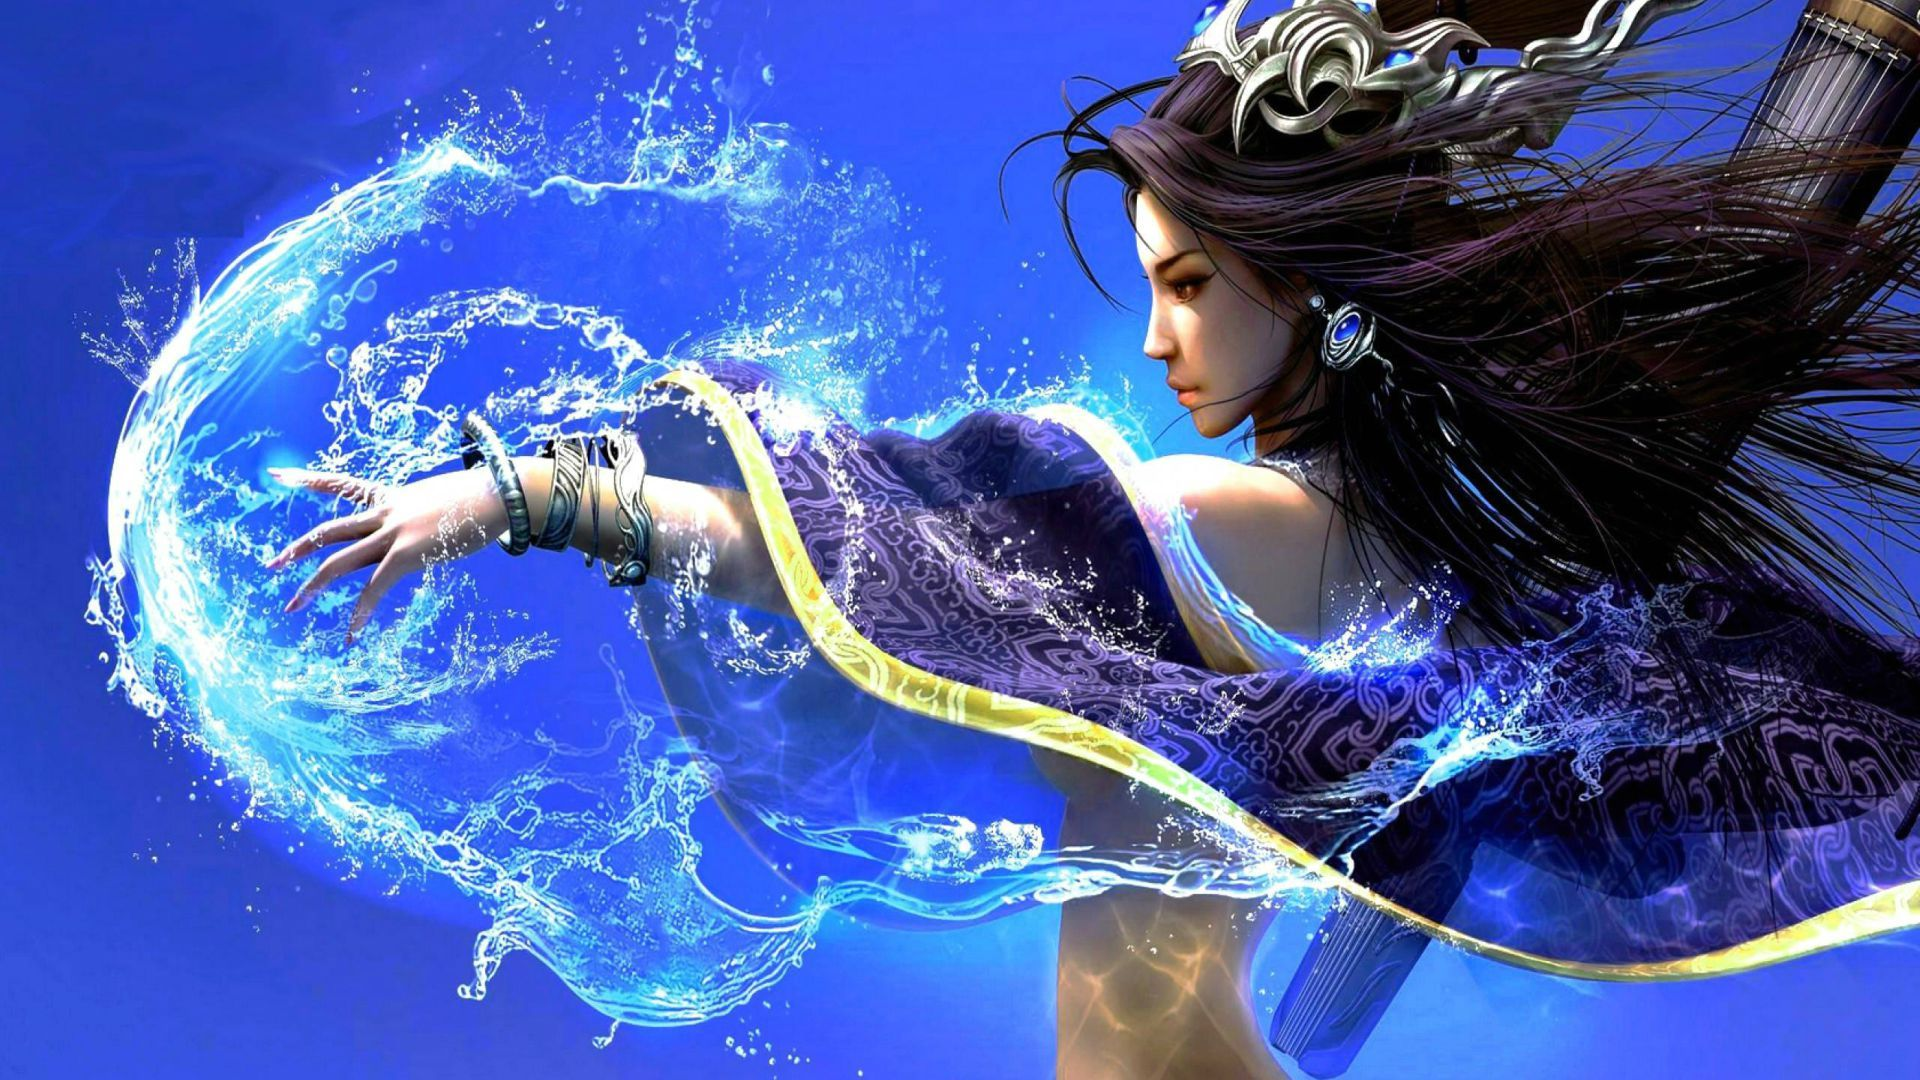 blue fantasy 1080p Wallpapers of Fantasy Beautiful Girl